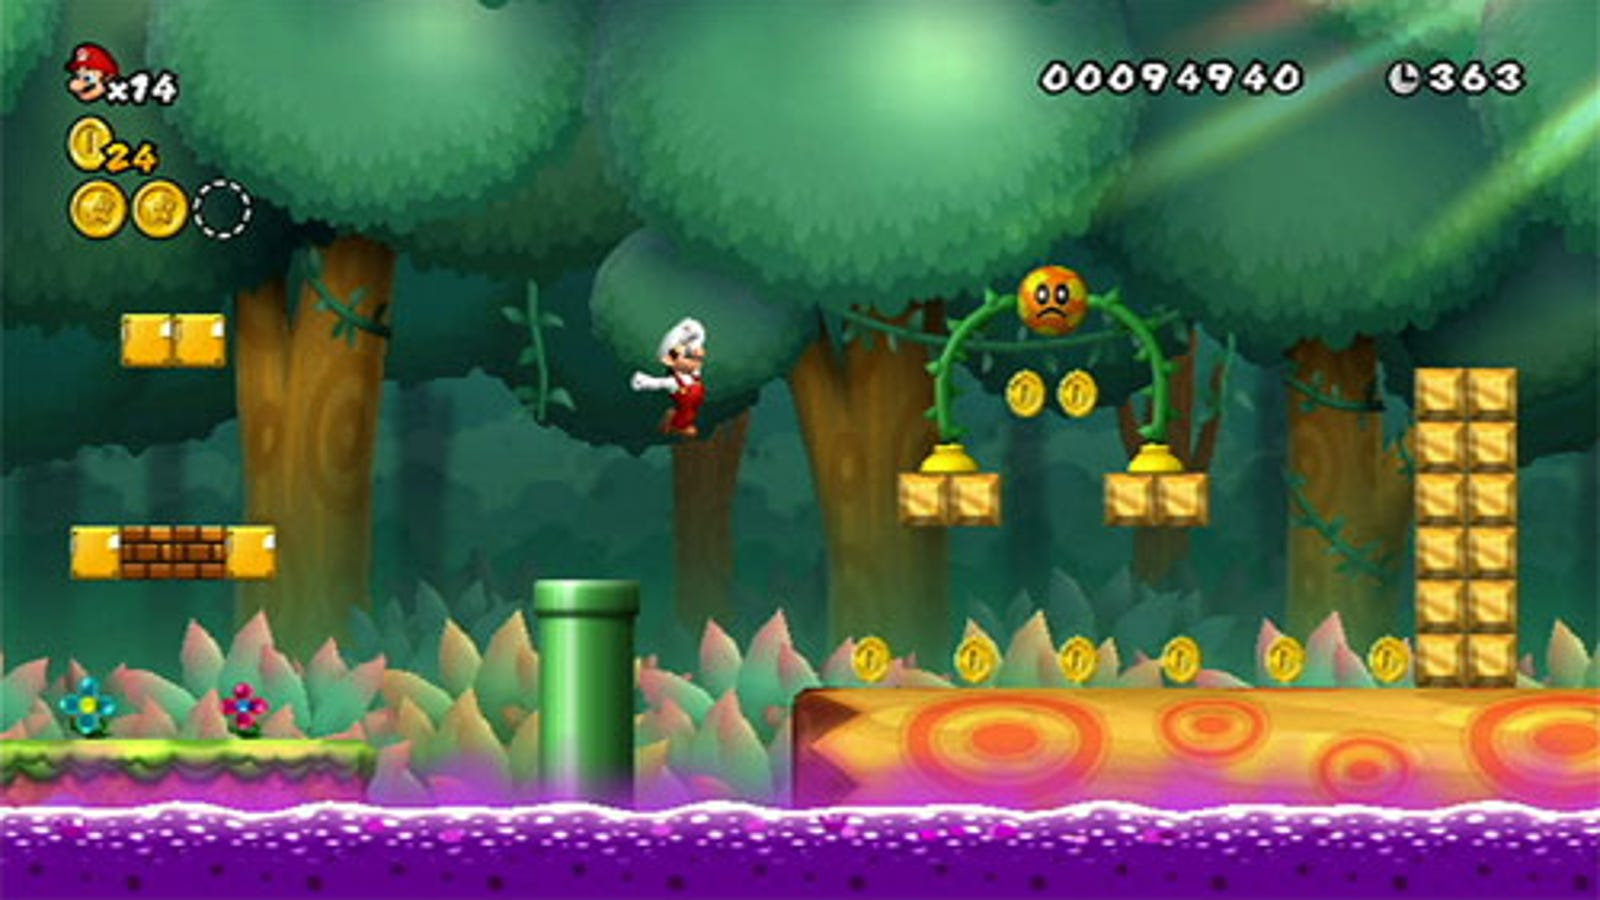 New Super Mario Bros  Wii Review: Go Buy A Wii